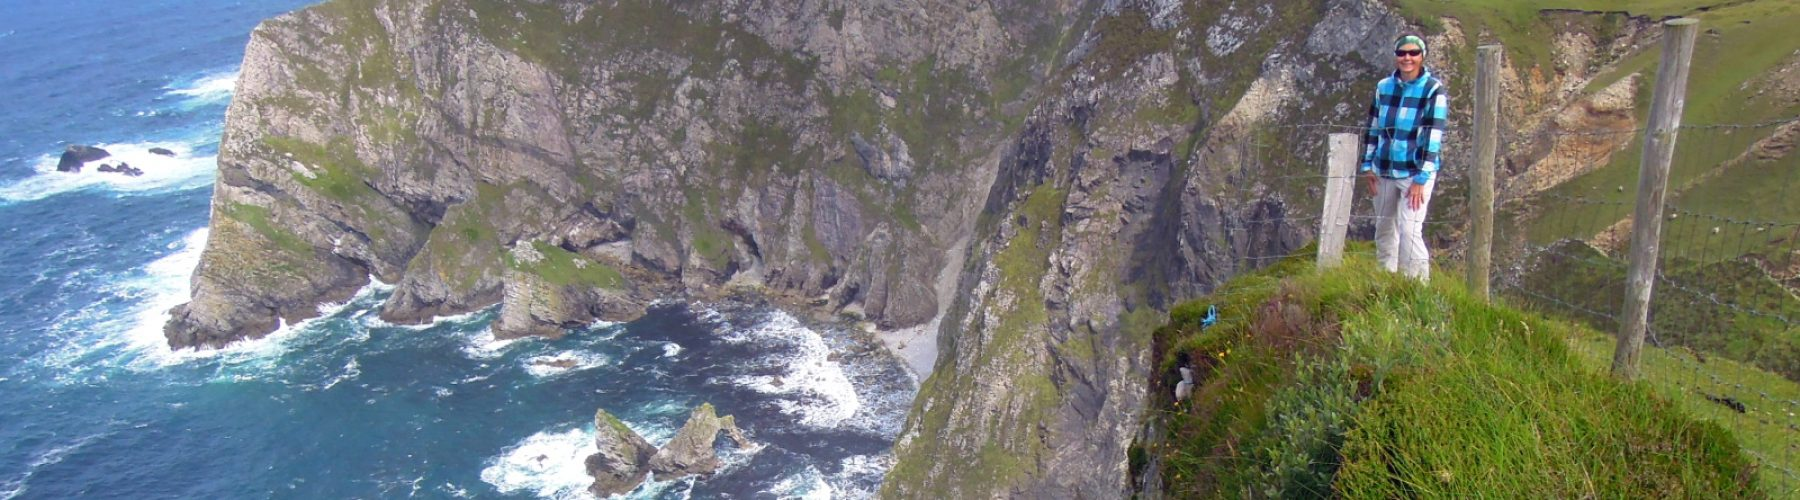 Self-guided cycling and walking tour at Glen Head, Donegal, Ireland